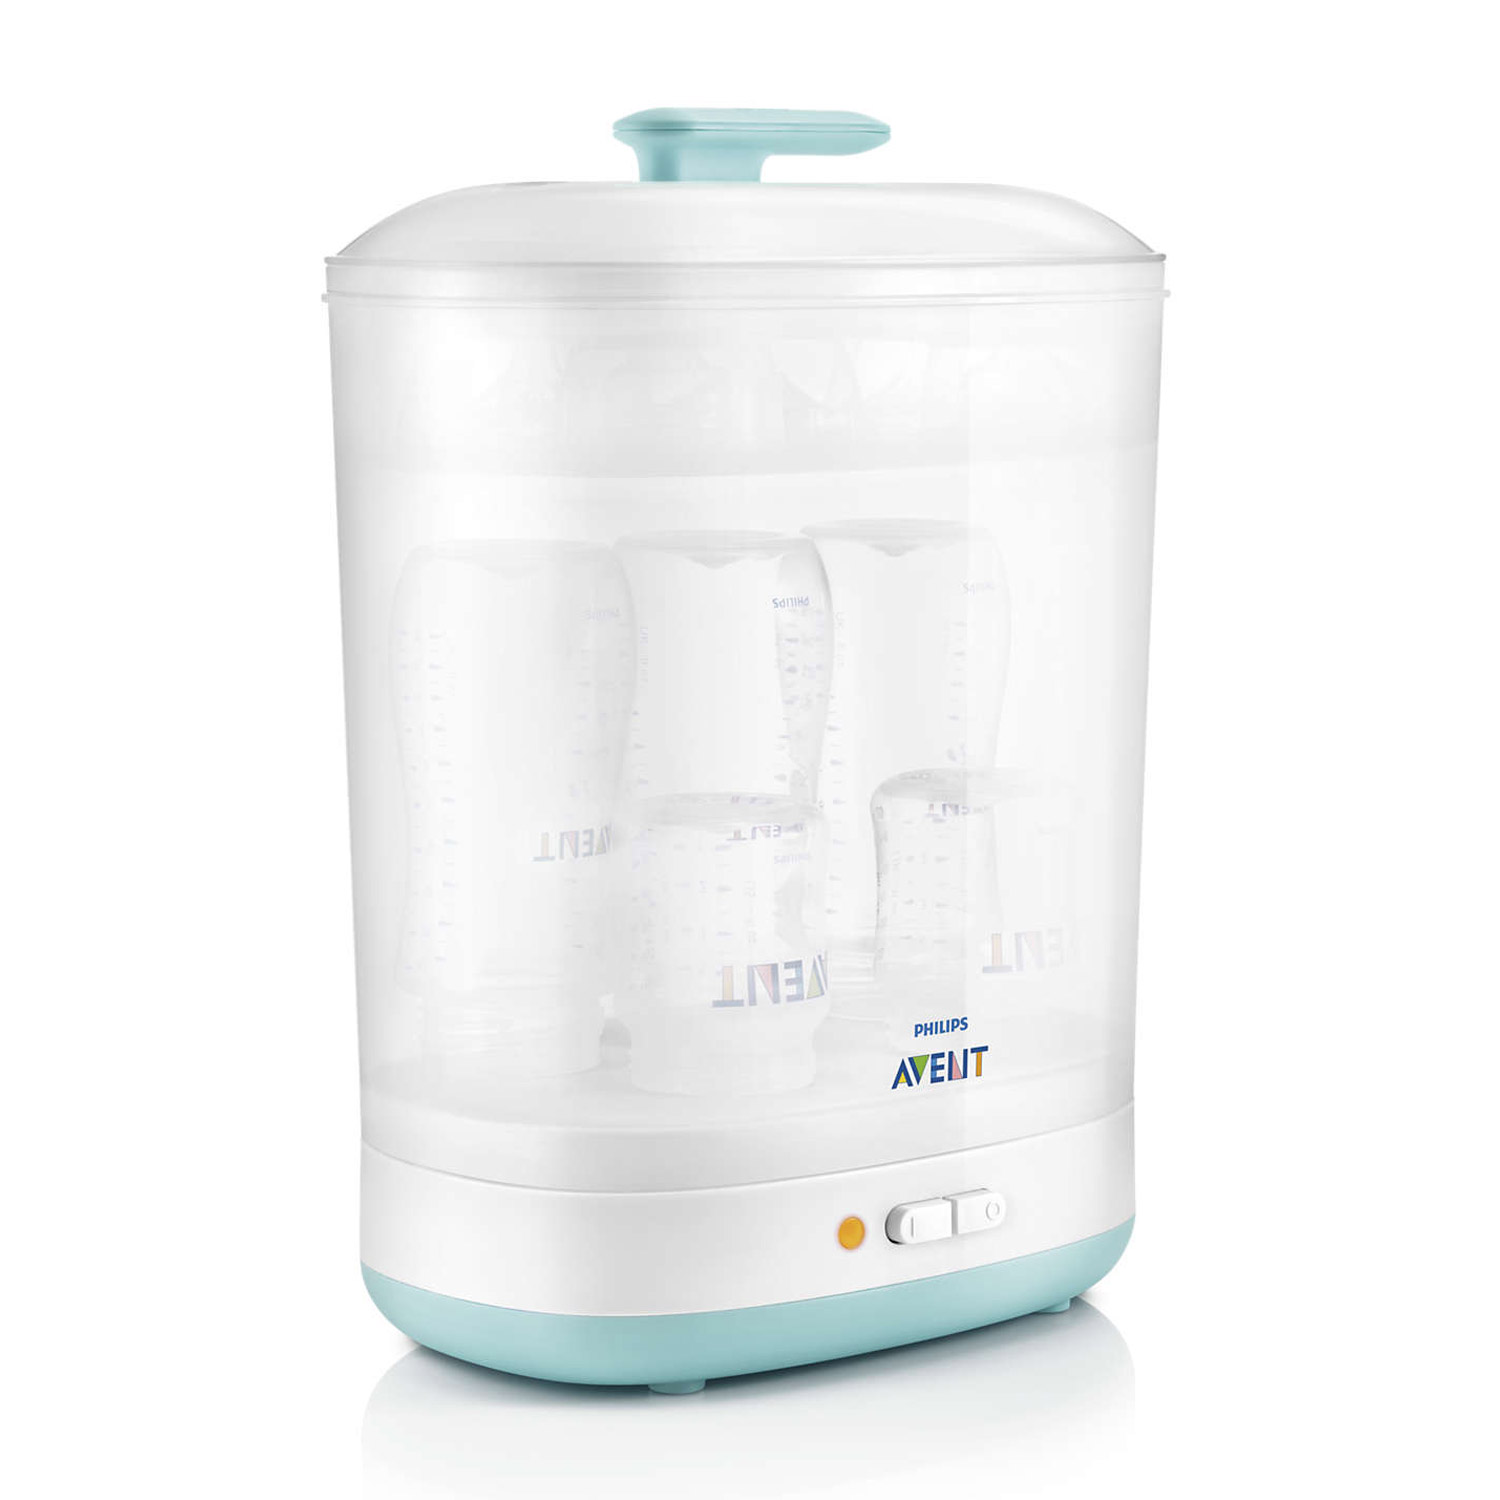 Avent 2 in 1 Electric Steriliser